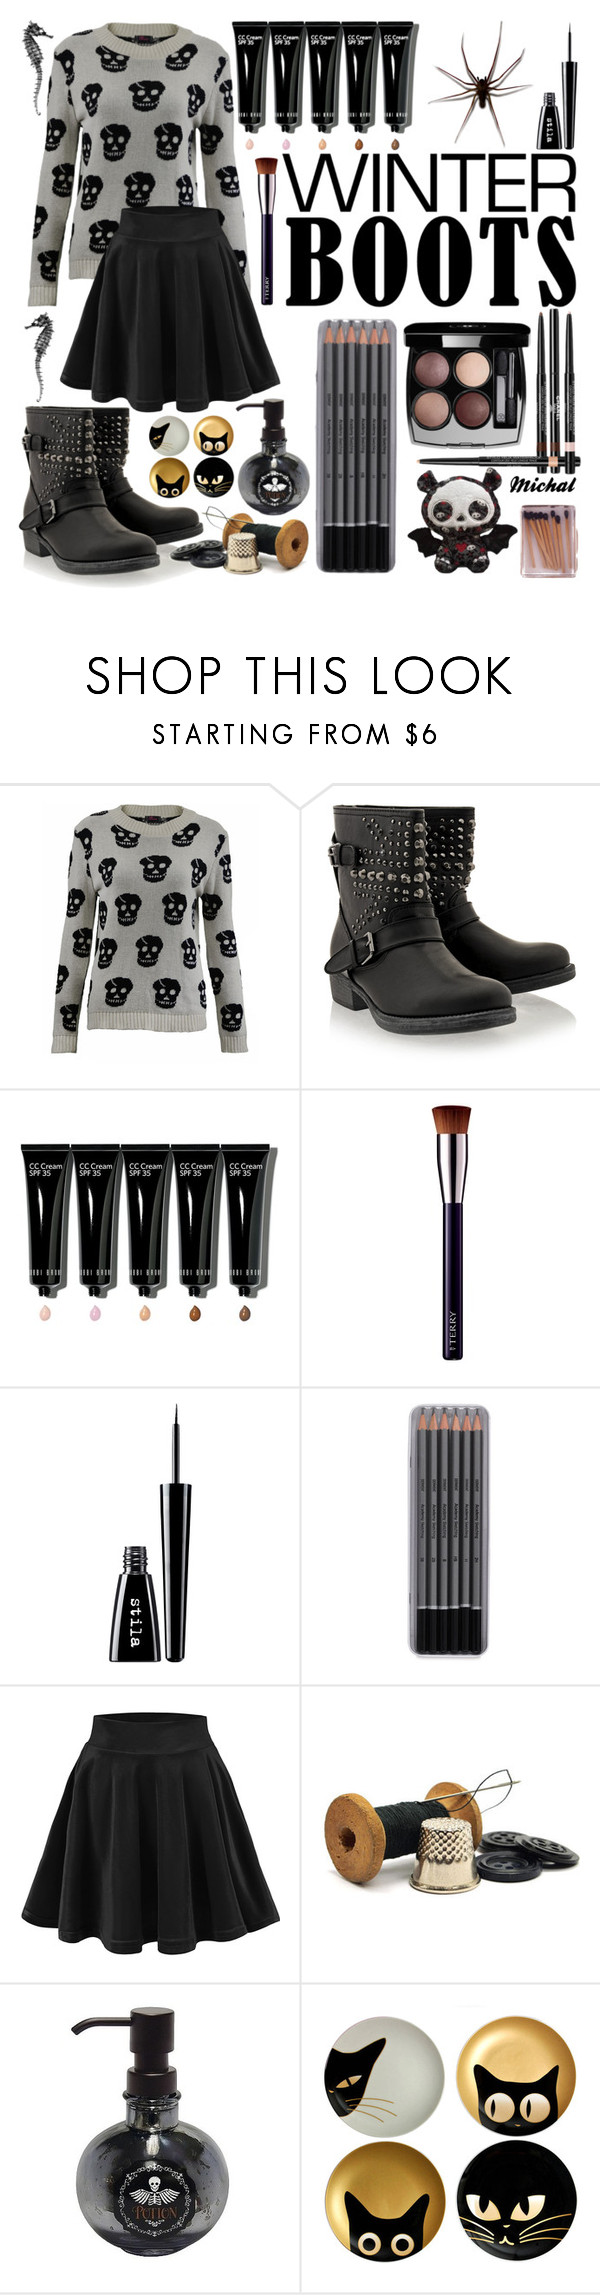 """""""Winter Boots"""" by michal100-15-4 ❤ liked on Polyvore featuring Timeless, Bobbi Brown Cosmetics, By Terry, Stila, Chanel, Evergreen and winterboots"""